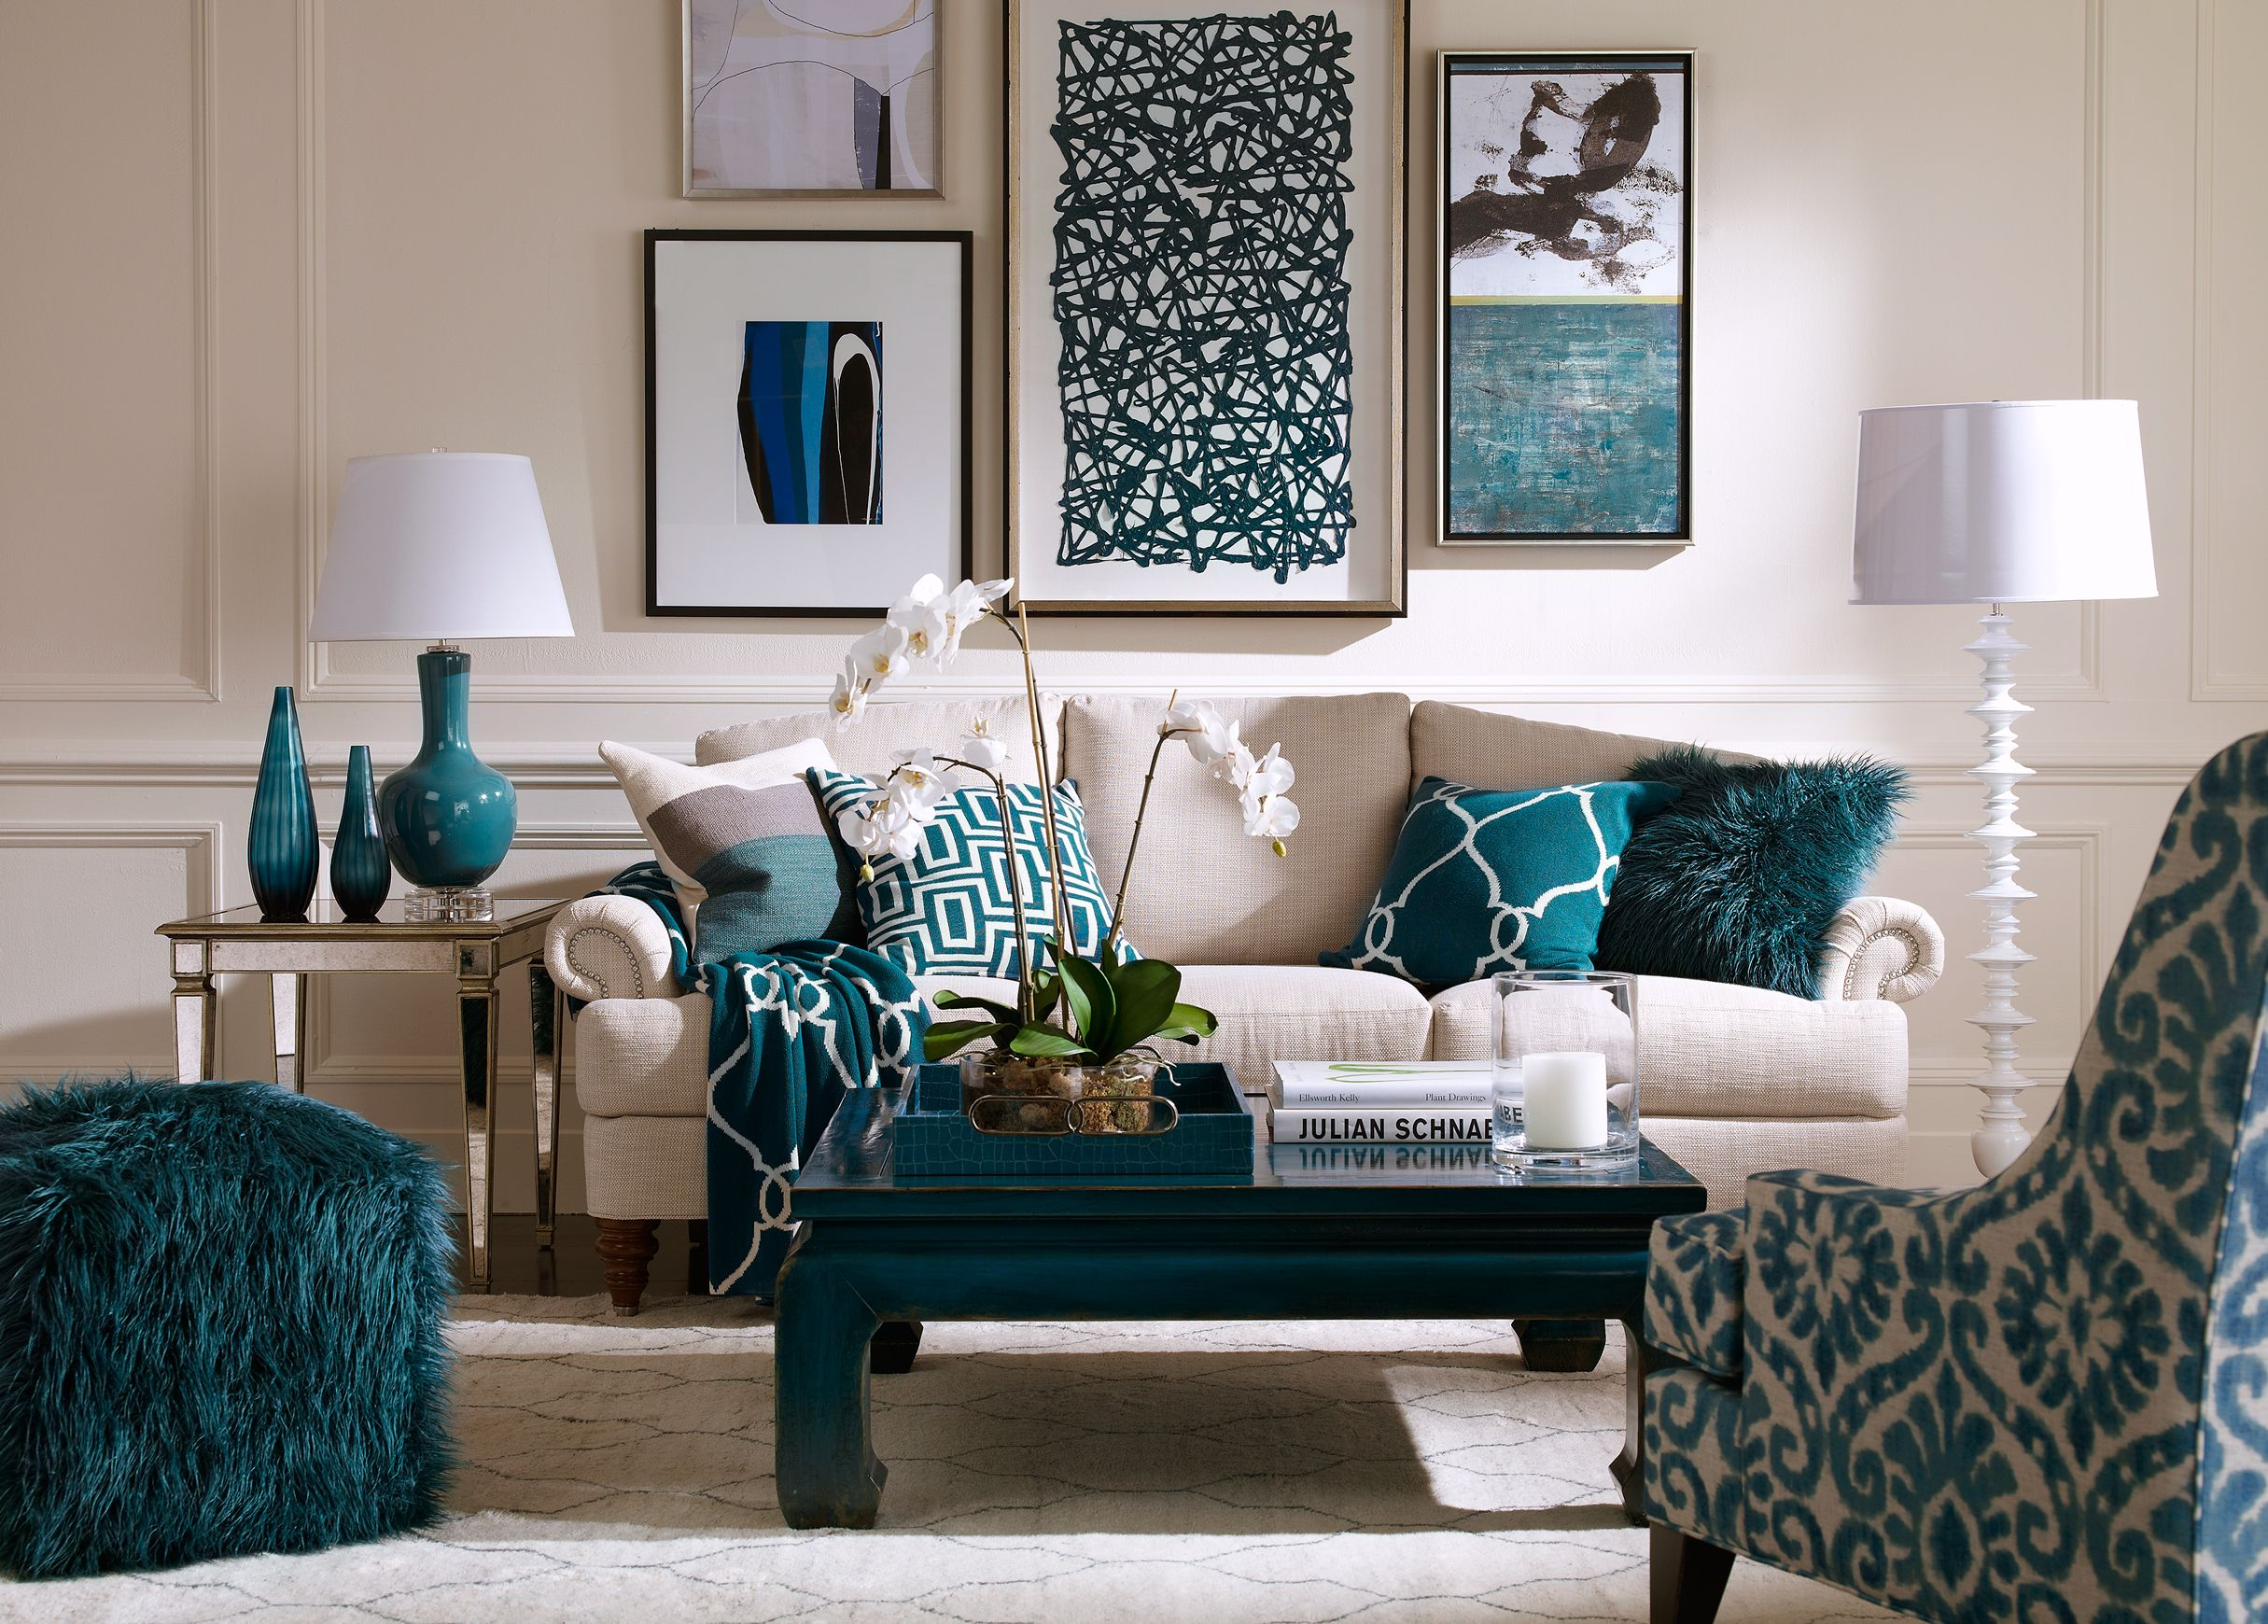 Turquoise Dining Room Ideas, Turquoise Rooms, Turquoise Living Room  Accessories, Using Turquoise In Decorating, Decorating With Turquoise  Accents, ...